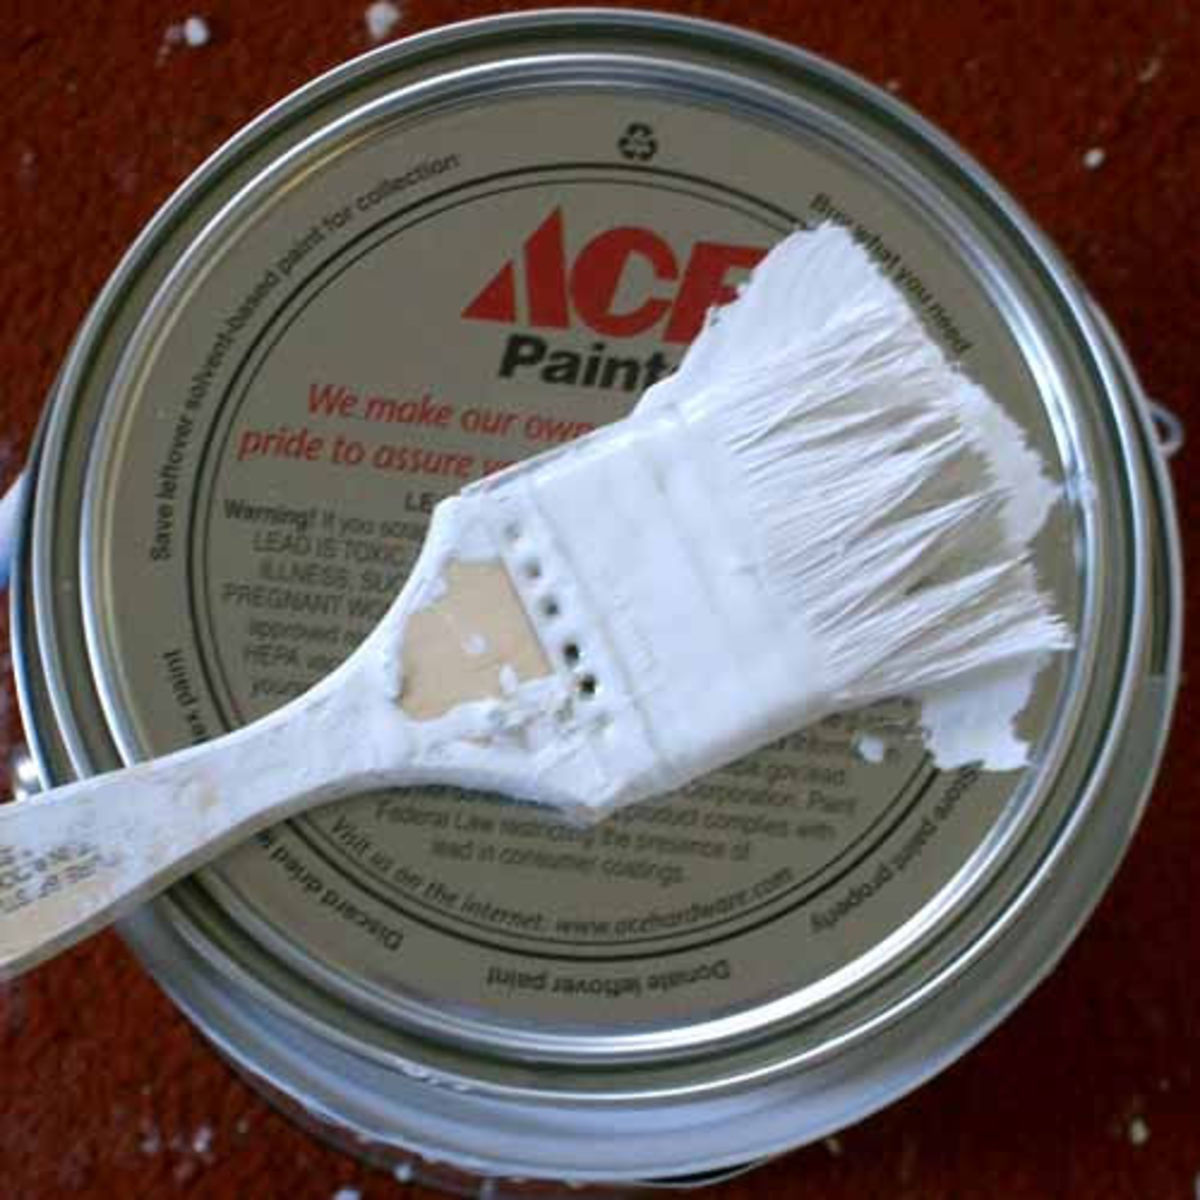 Paint freshens up a room like nothing else!